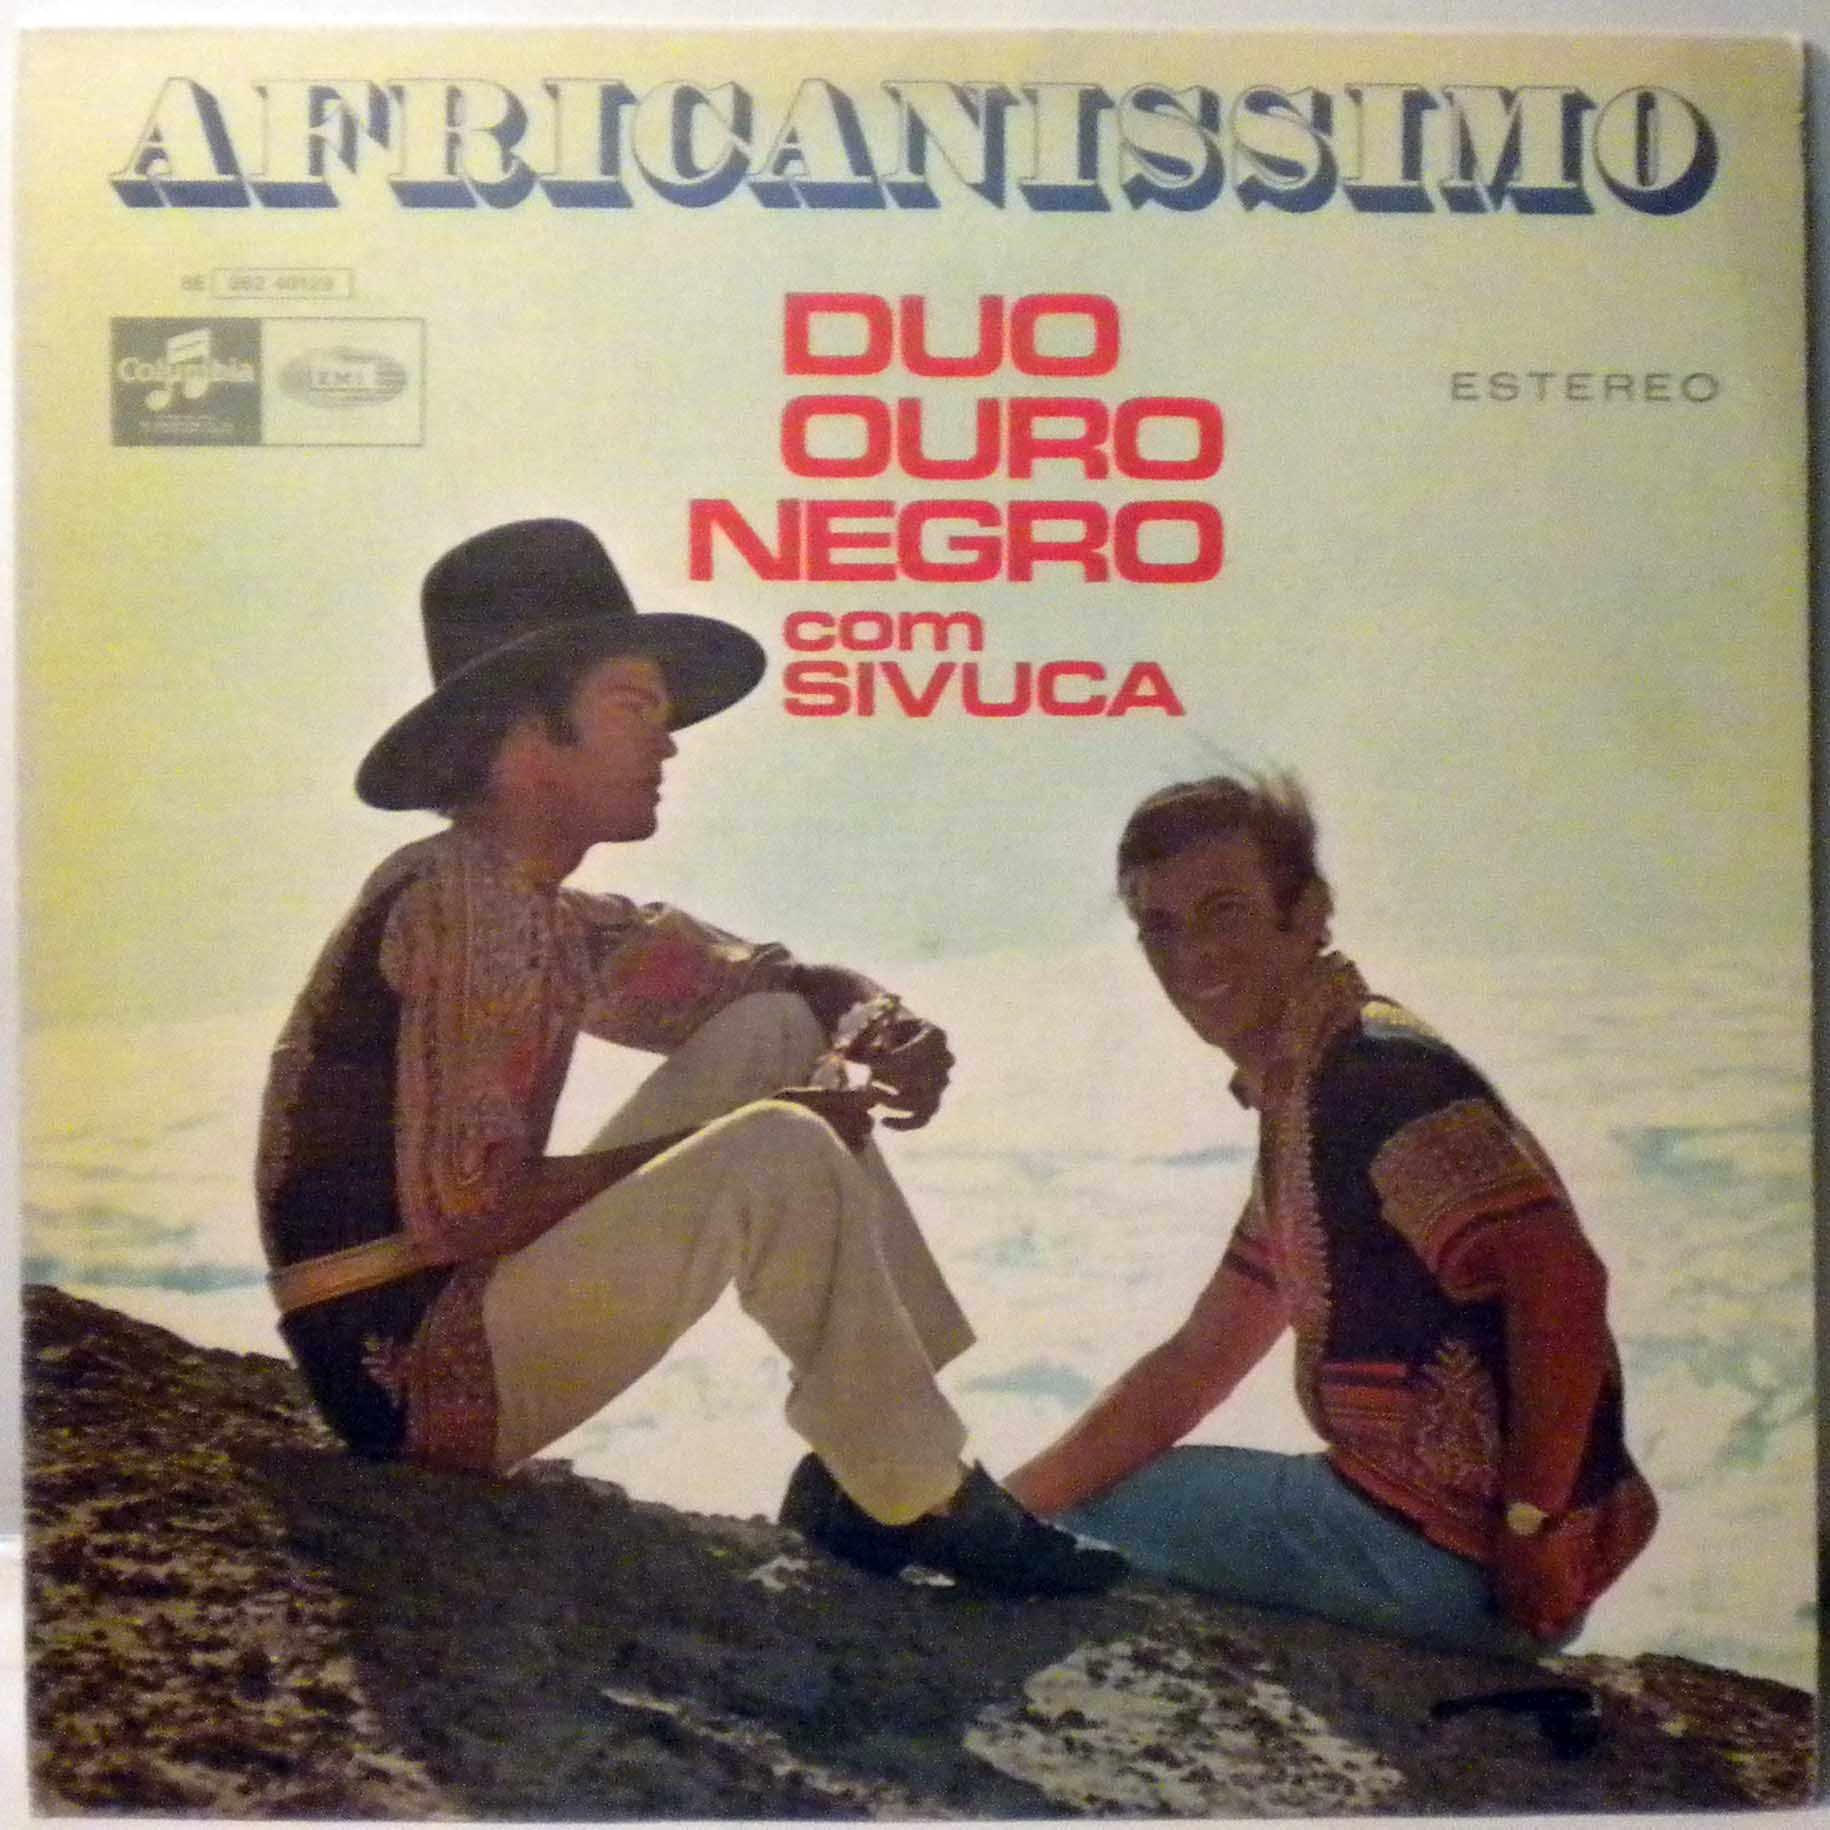 DUO OURO NEGRO - Africanissimo - 33T